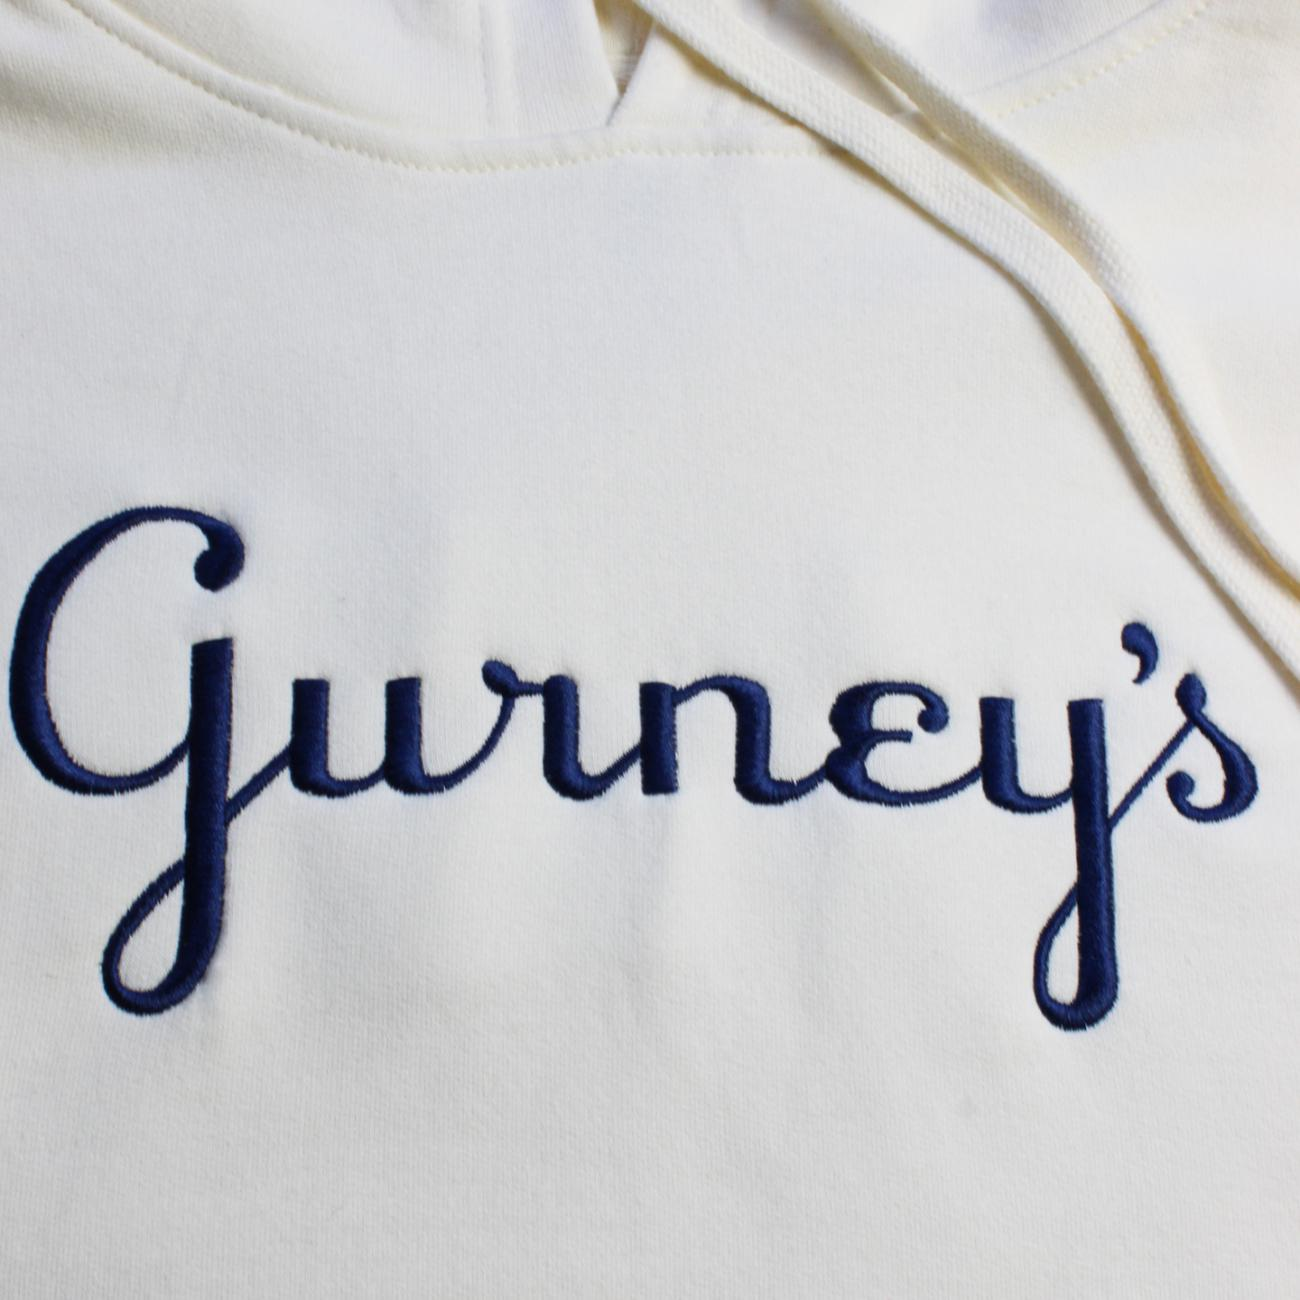 Gurney's Hoodie embroidered across chest bone